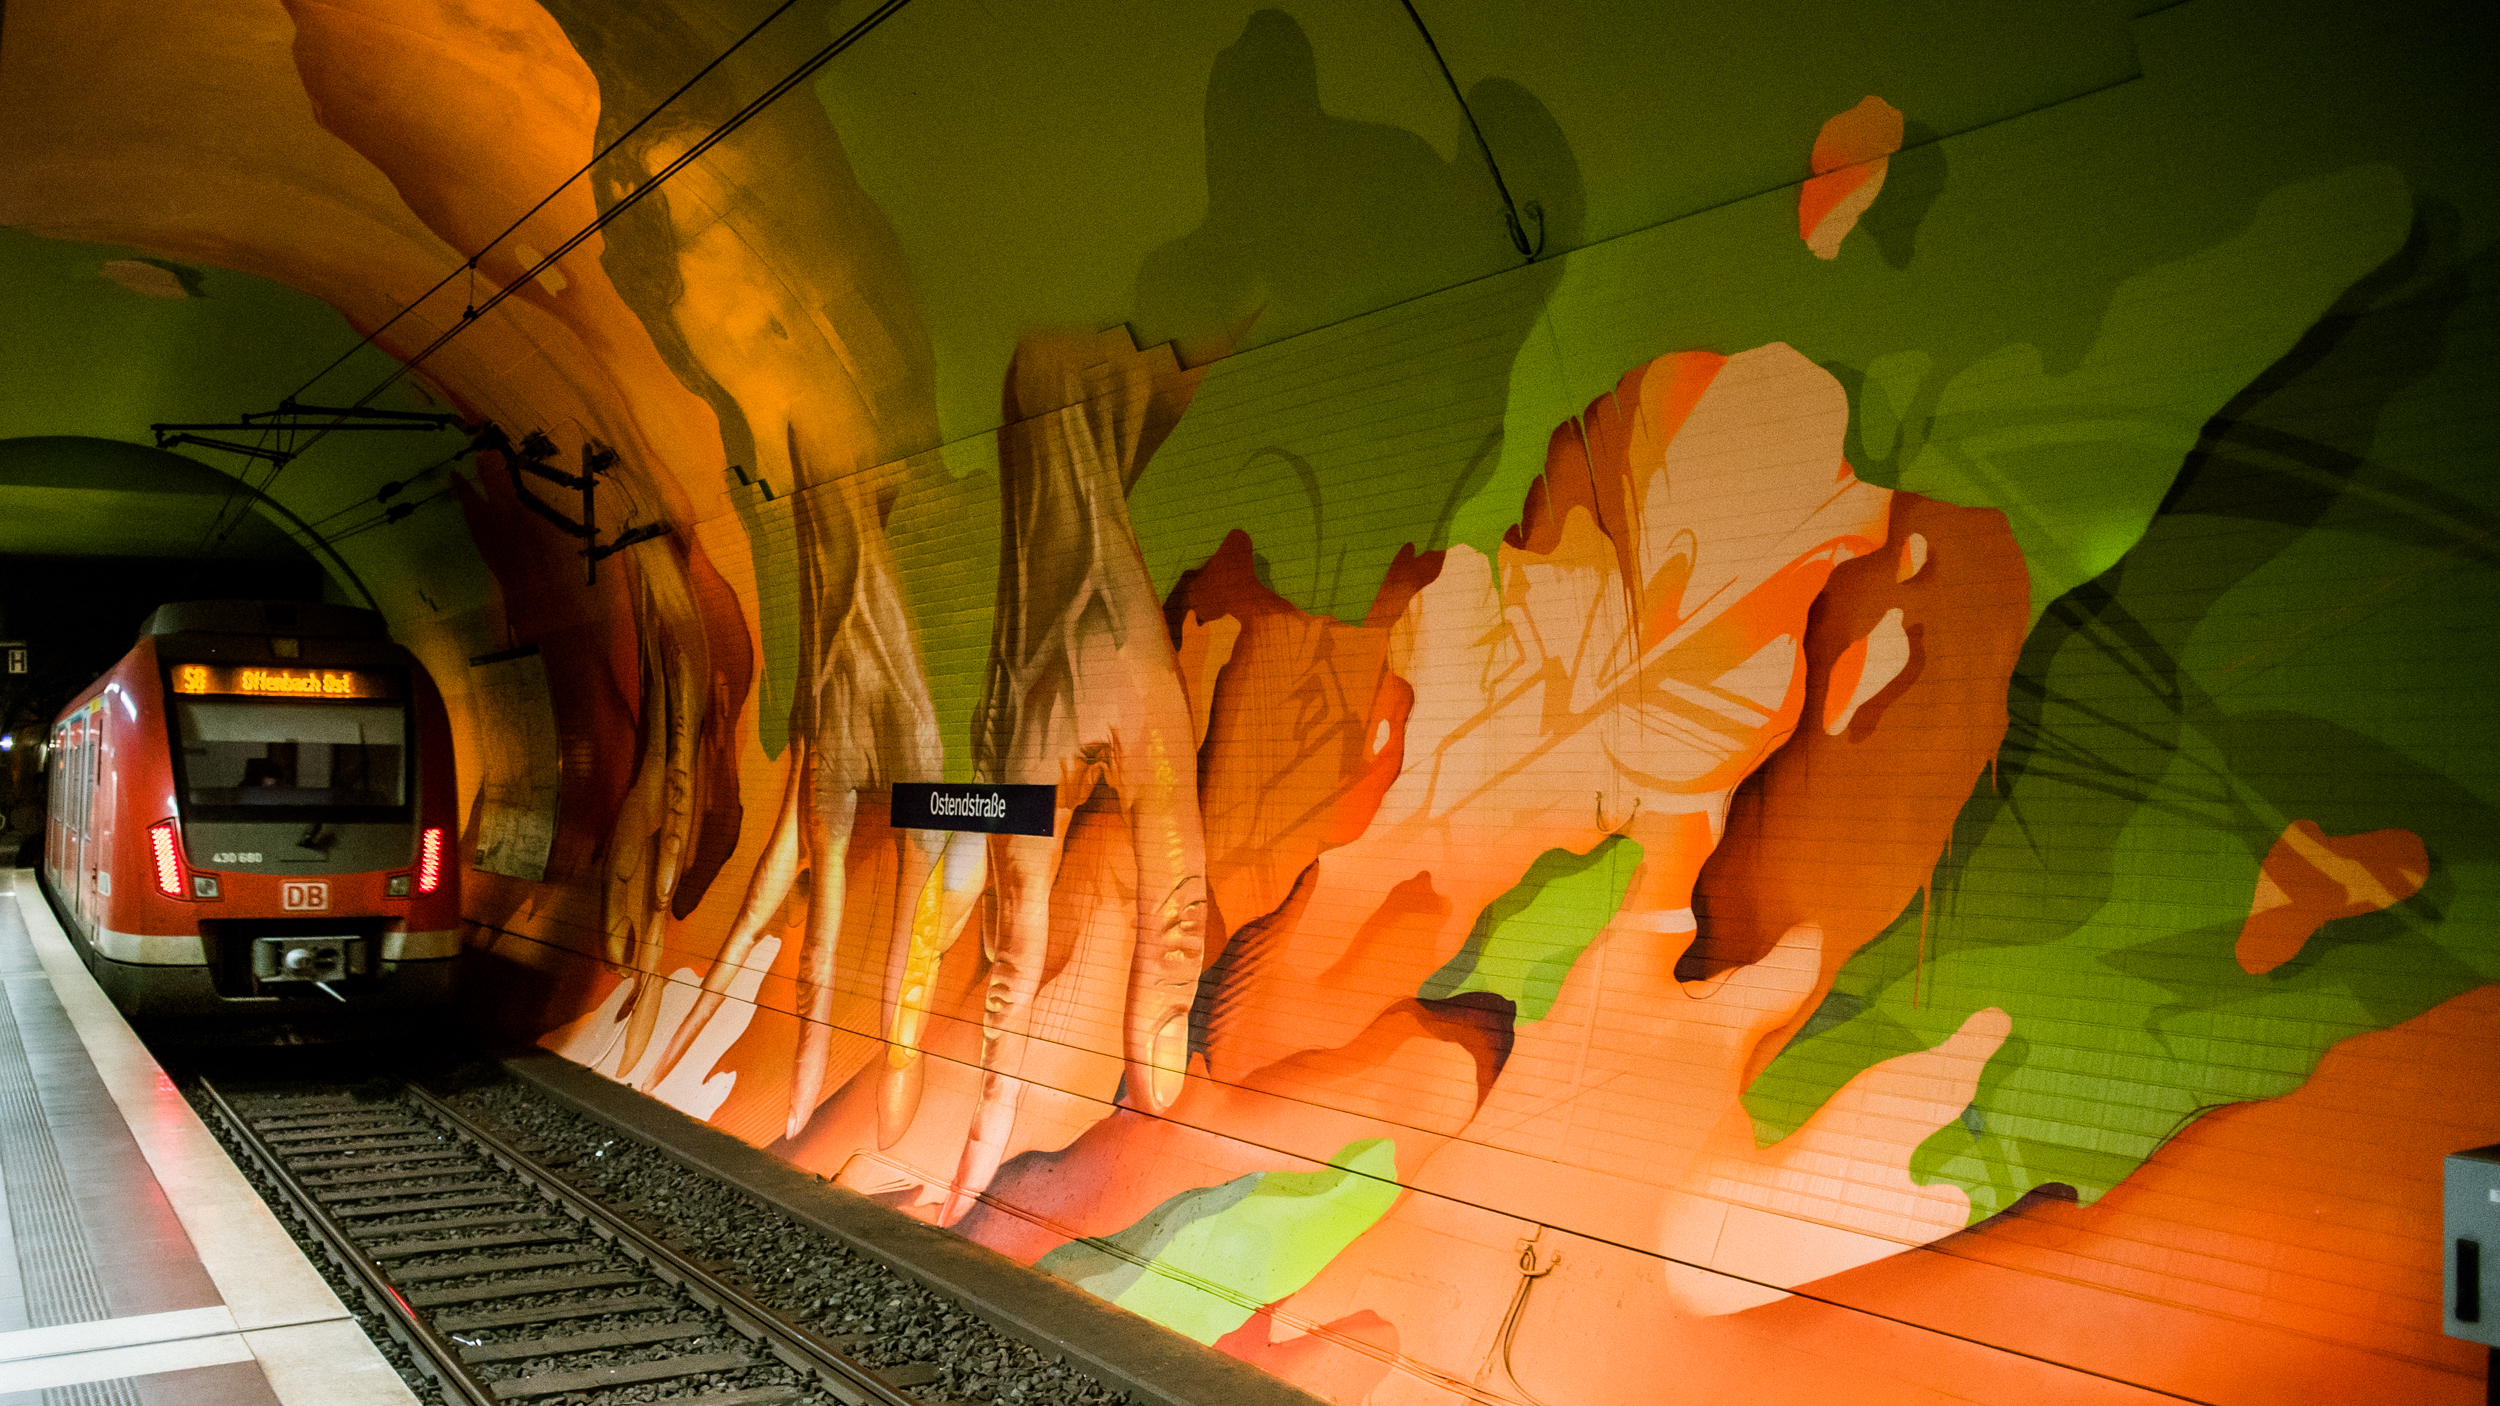 A work by Does - Ostendstrasse frankfurt germany tunnel 29